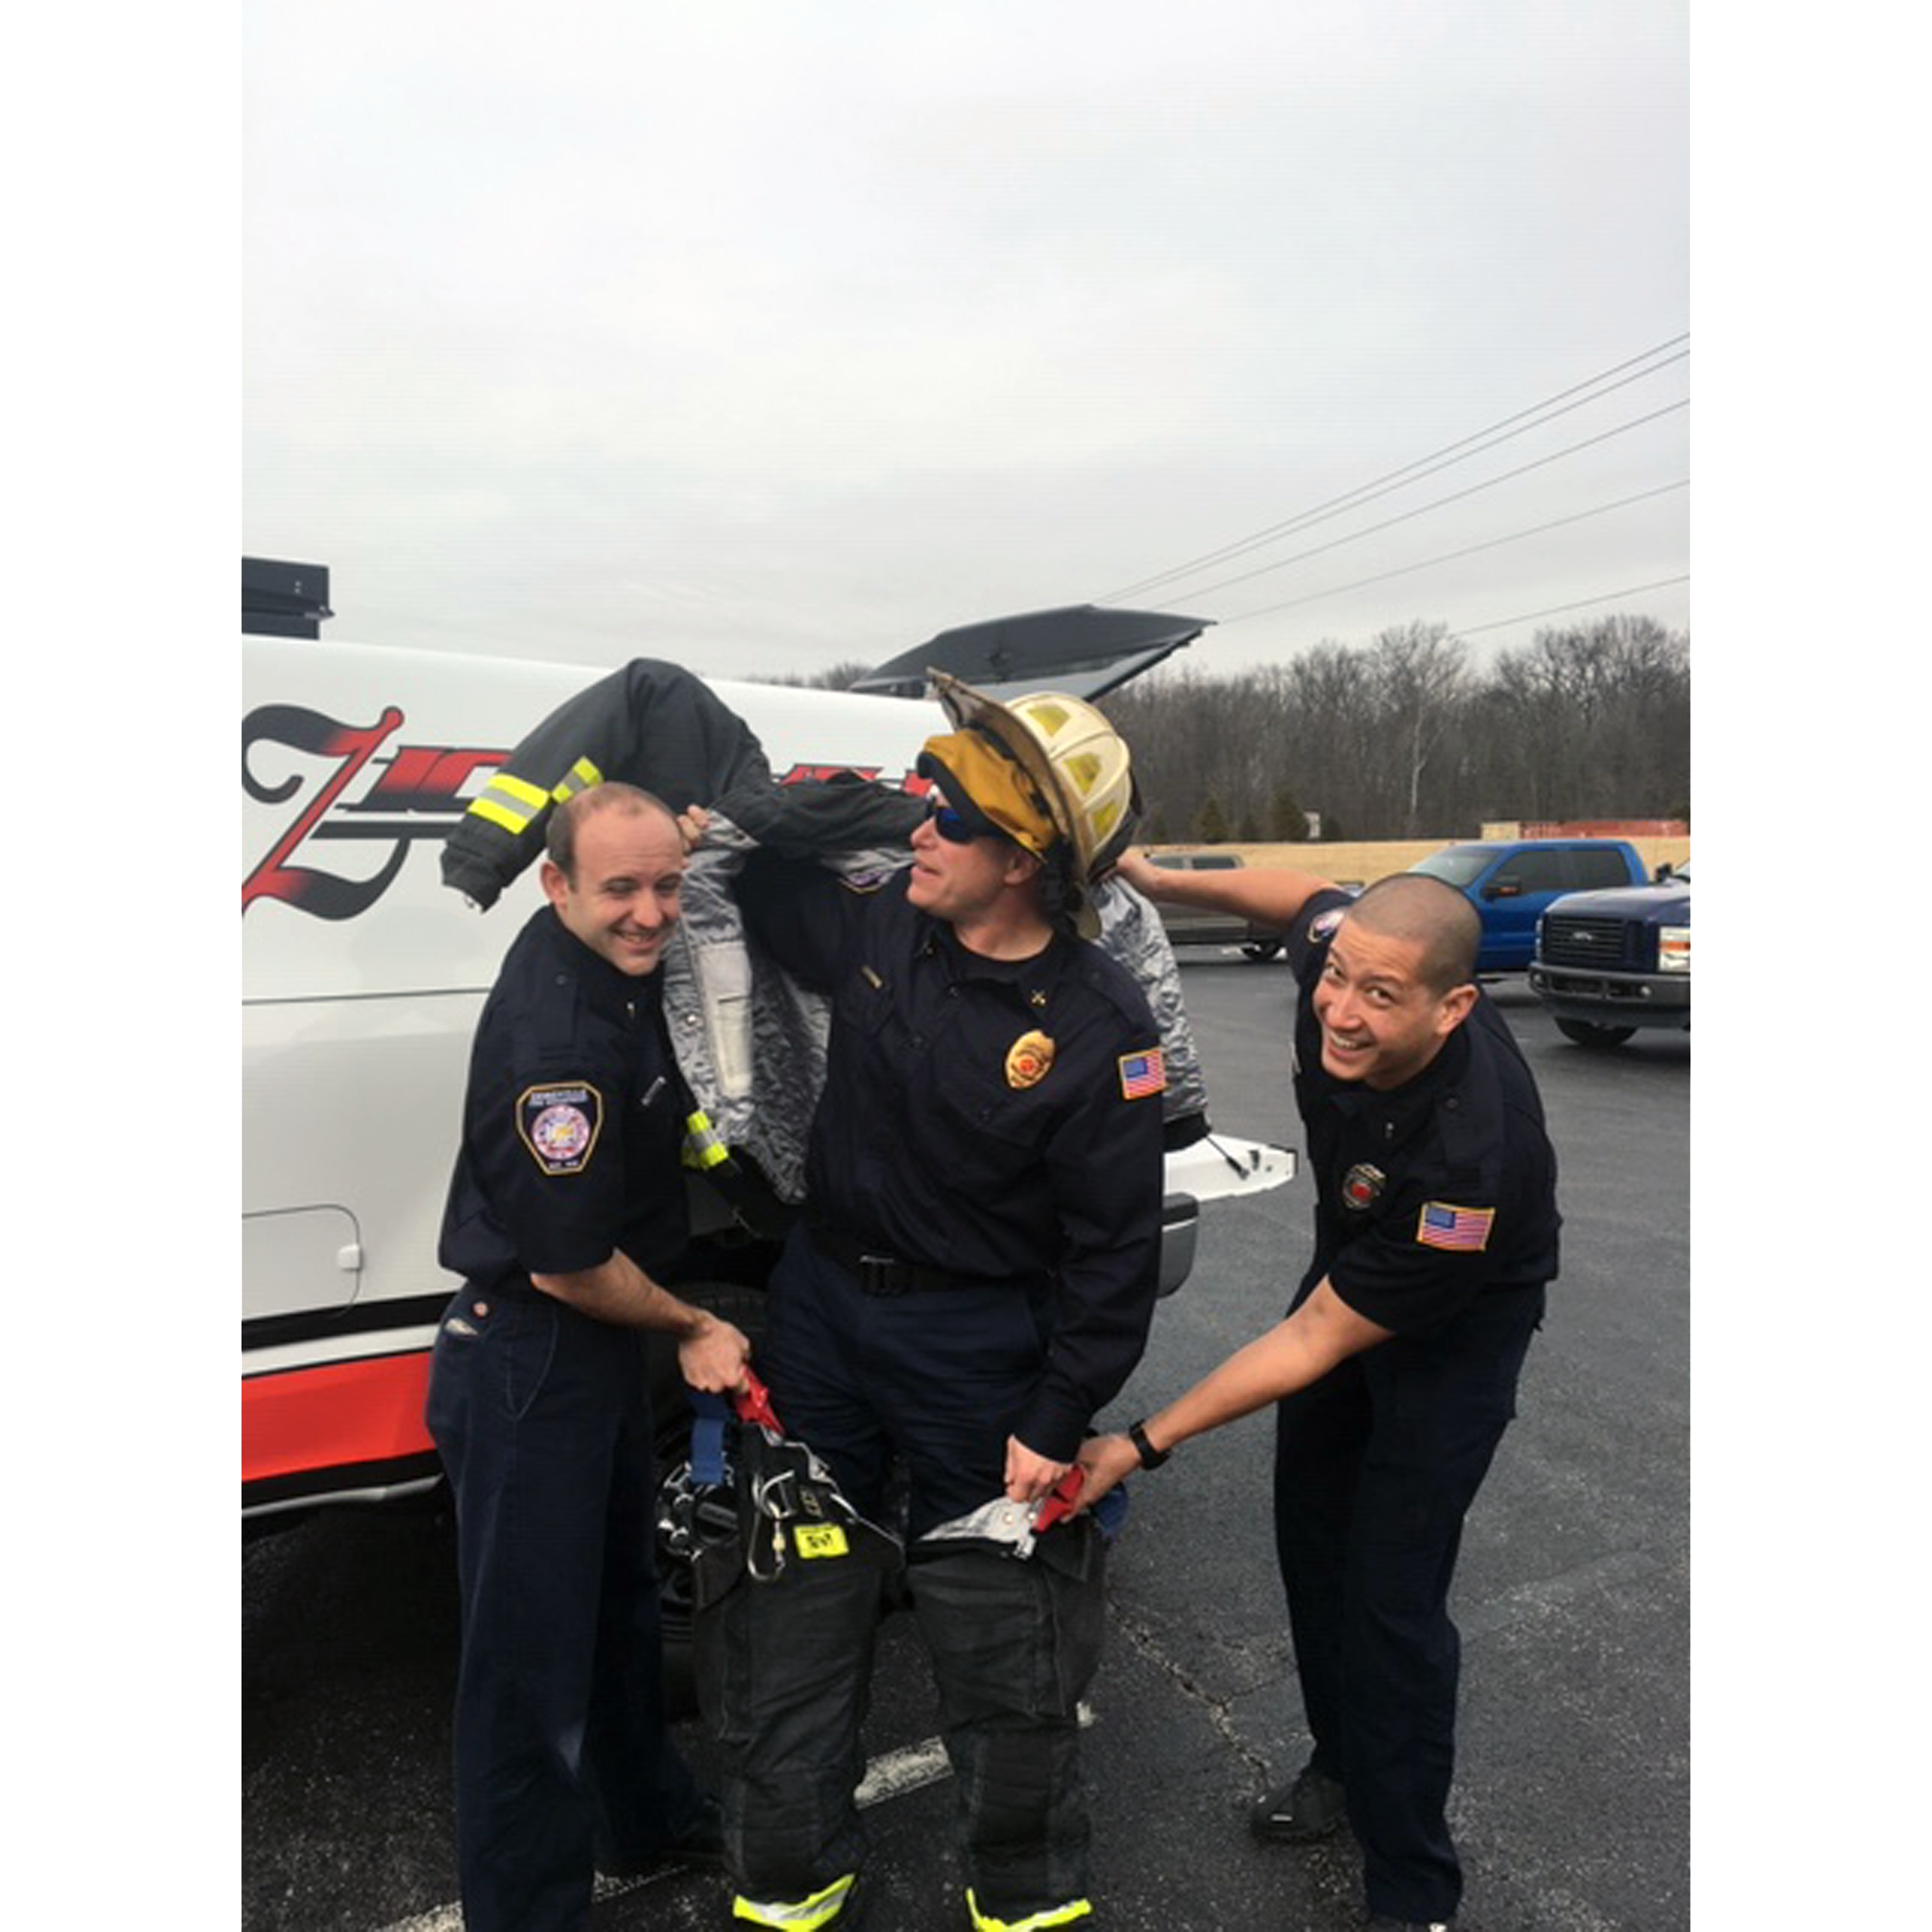 3 Zionsville firefighters posing